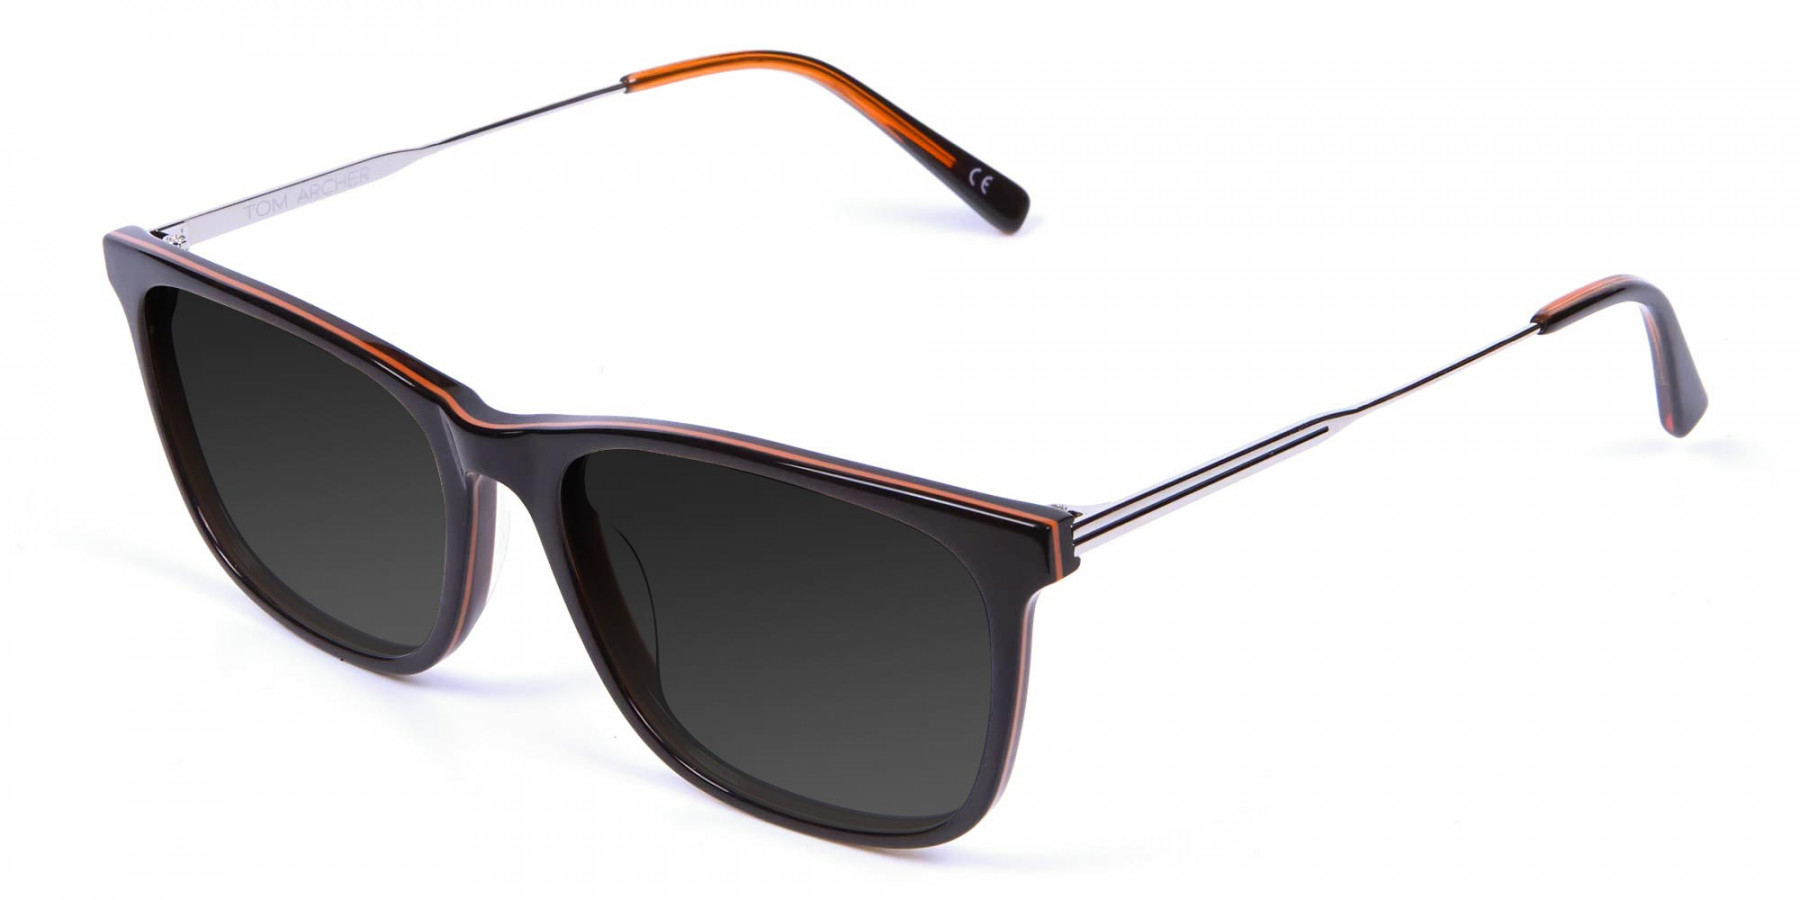 Multicolor Frame Sunglasses - 3